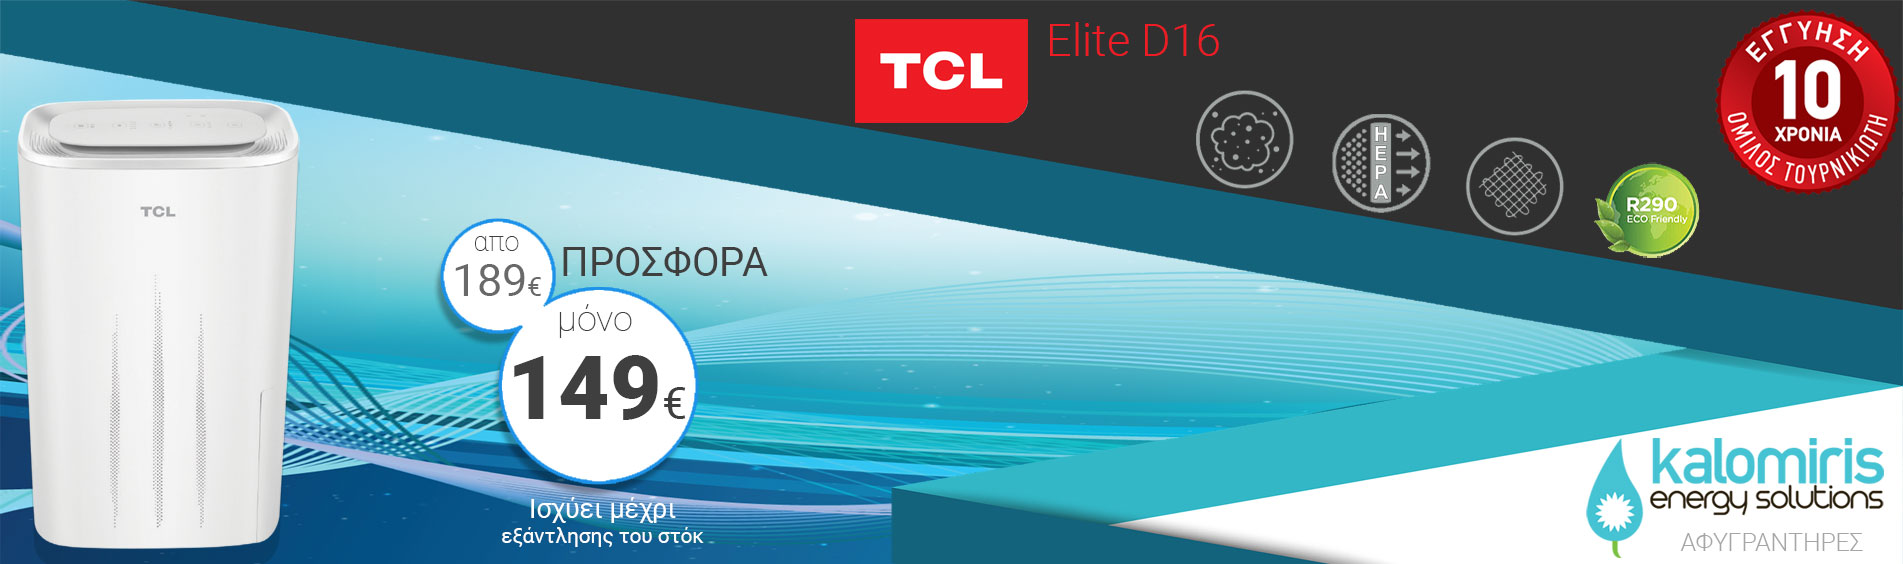 Black-Friday-TCL-Elite-D16